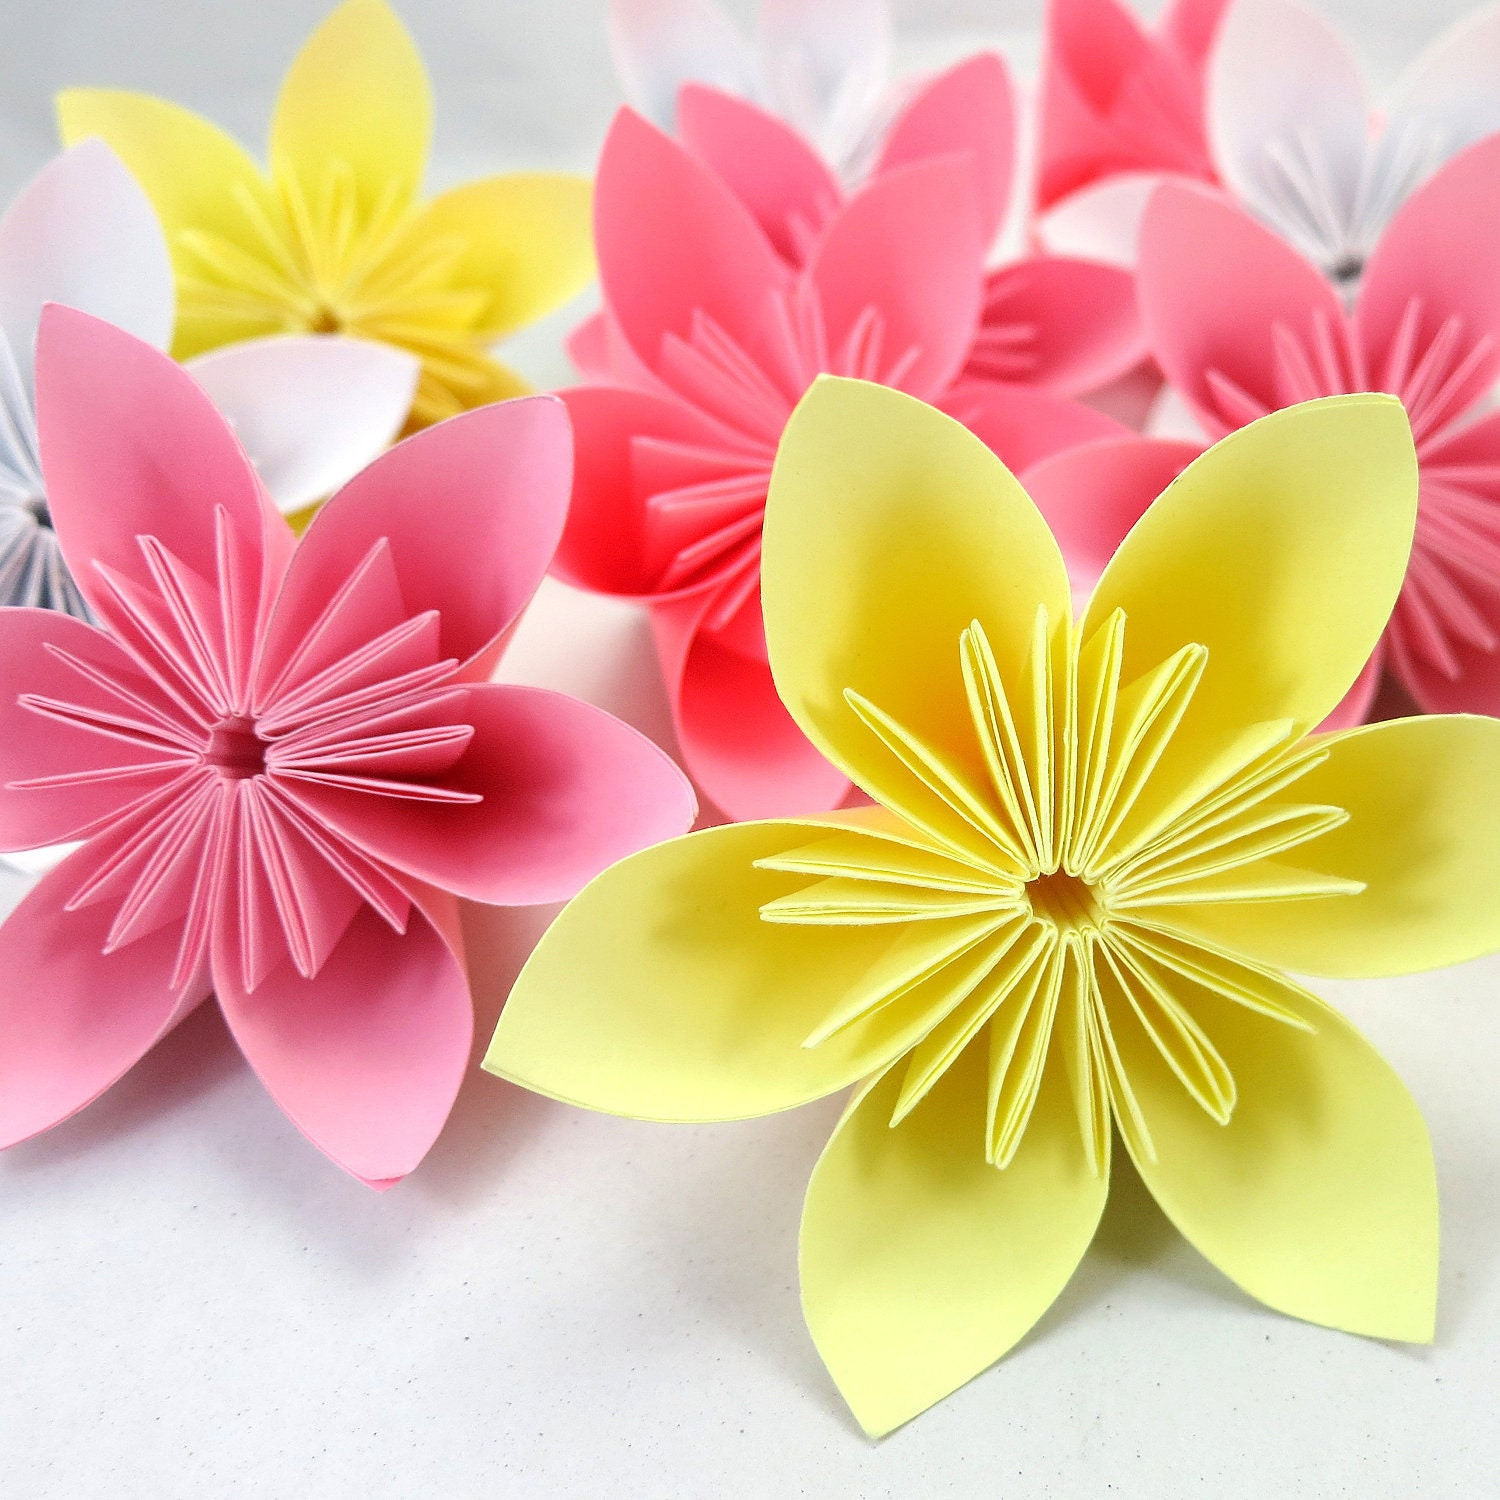 Cherry Blossom Origami Folding Flowers 20 pcs by JUSTPATCHshop - photo#46